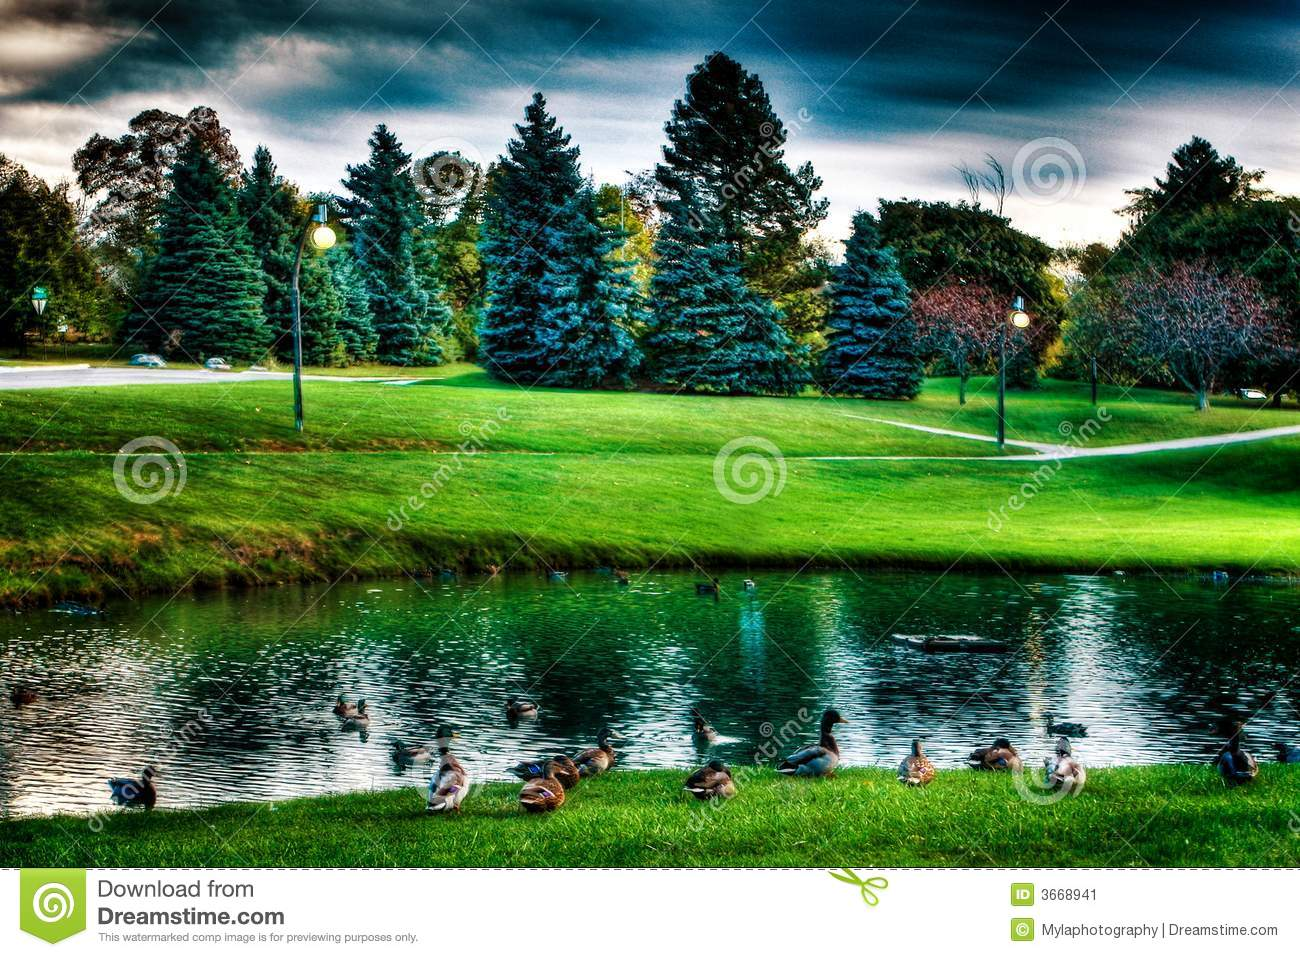 Landscape of lake and trees